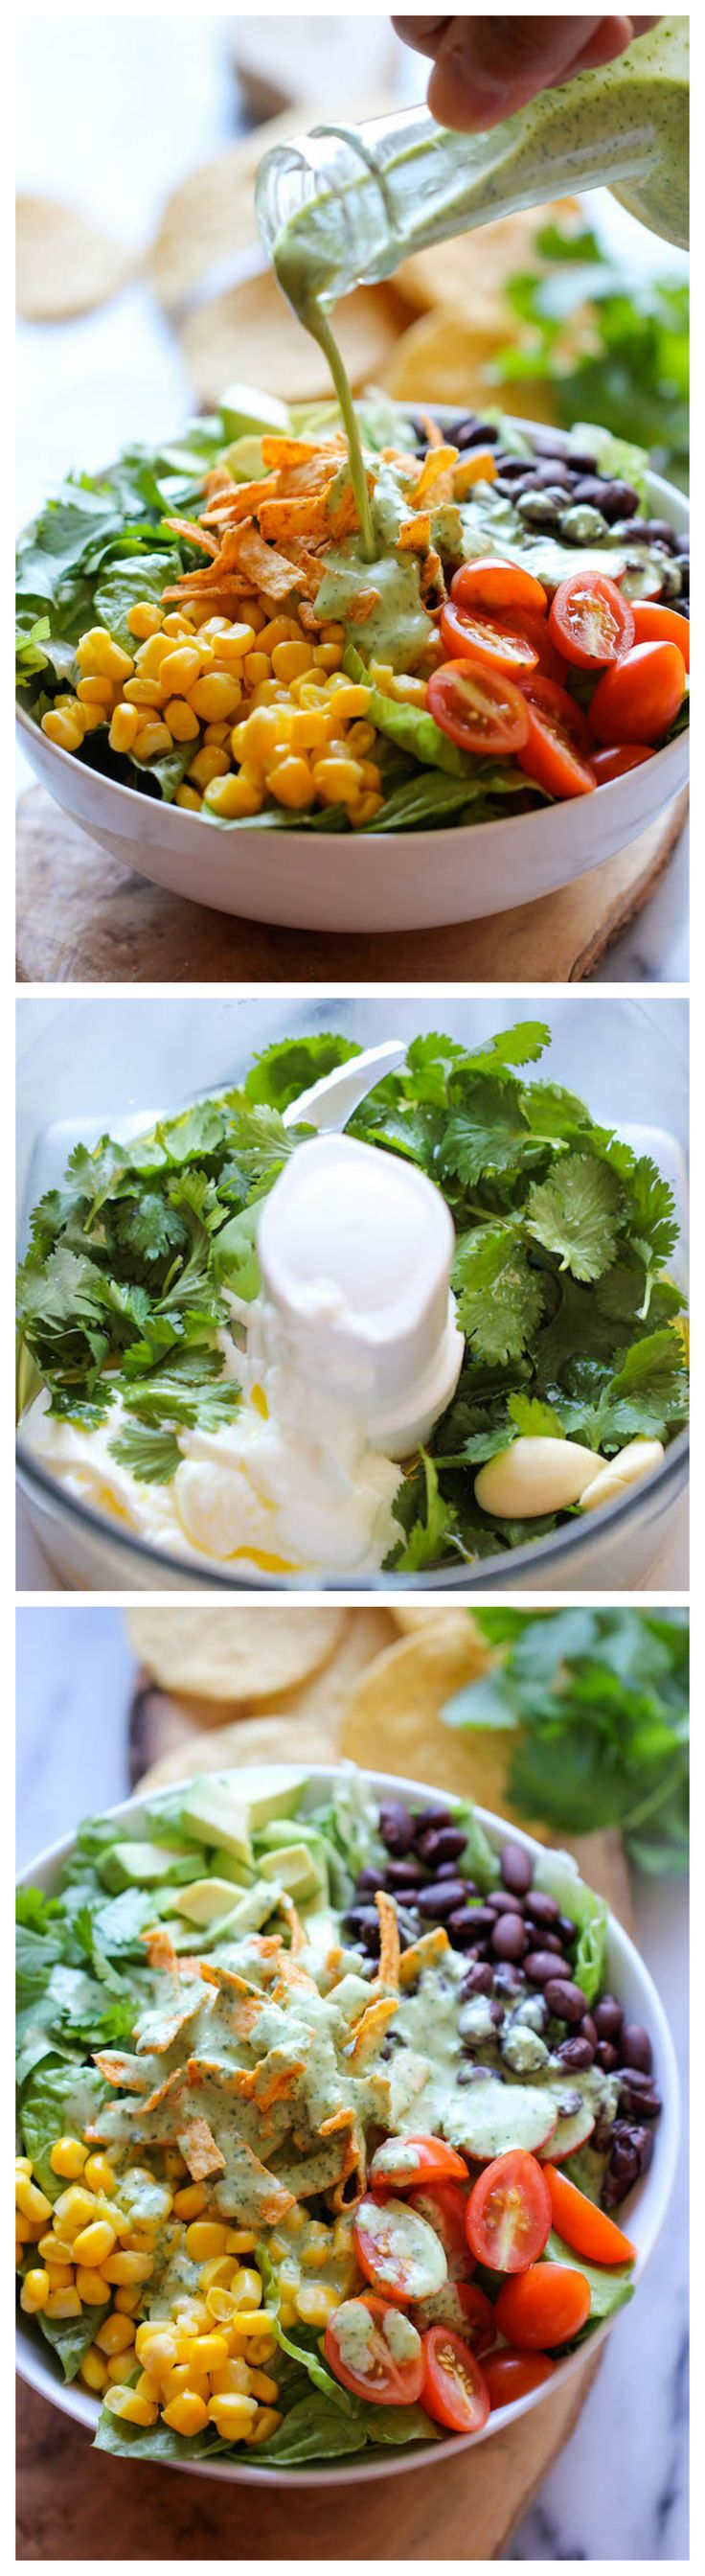 Southwestern Chopped Salad with Cilantro Lime Dressing - A tex-mex style salad with an incredibly creamy Greek yogurt cilantro dressing! @Trent Johnson Johnson Butts-Ah Rhee